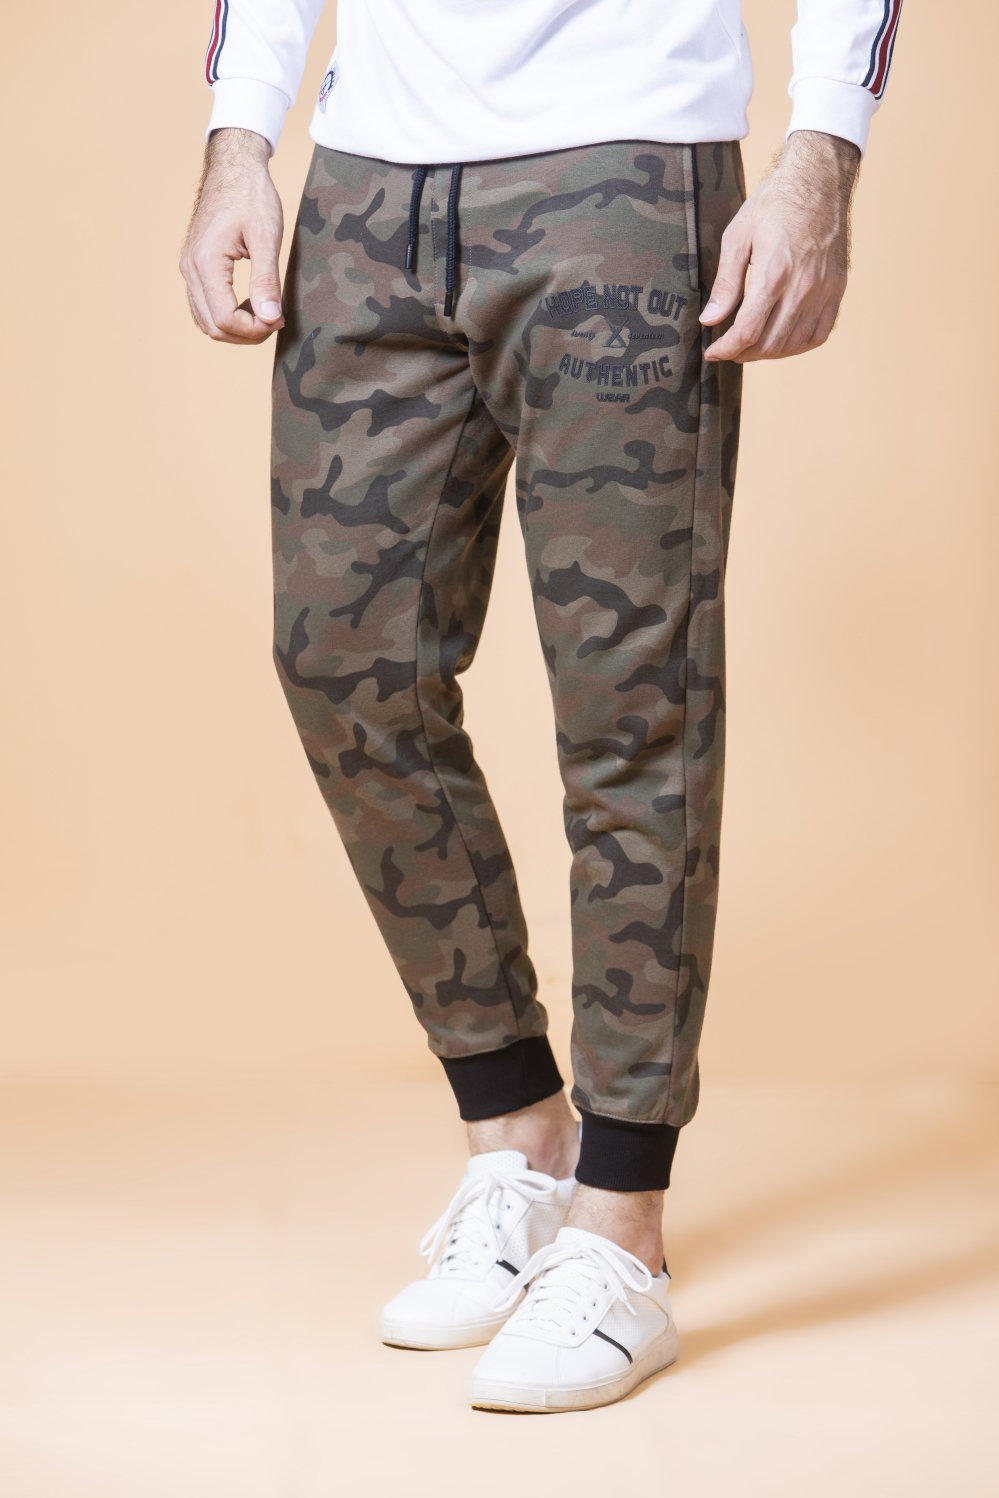 Camo Trouser HMKBF20004 - HOPE NOT OUT